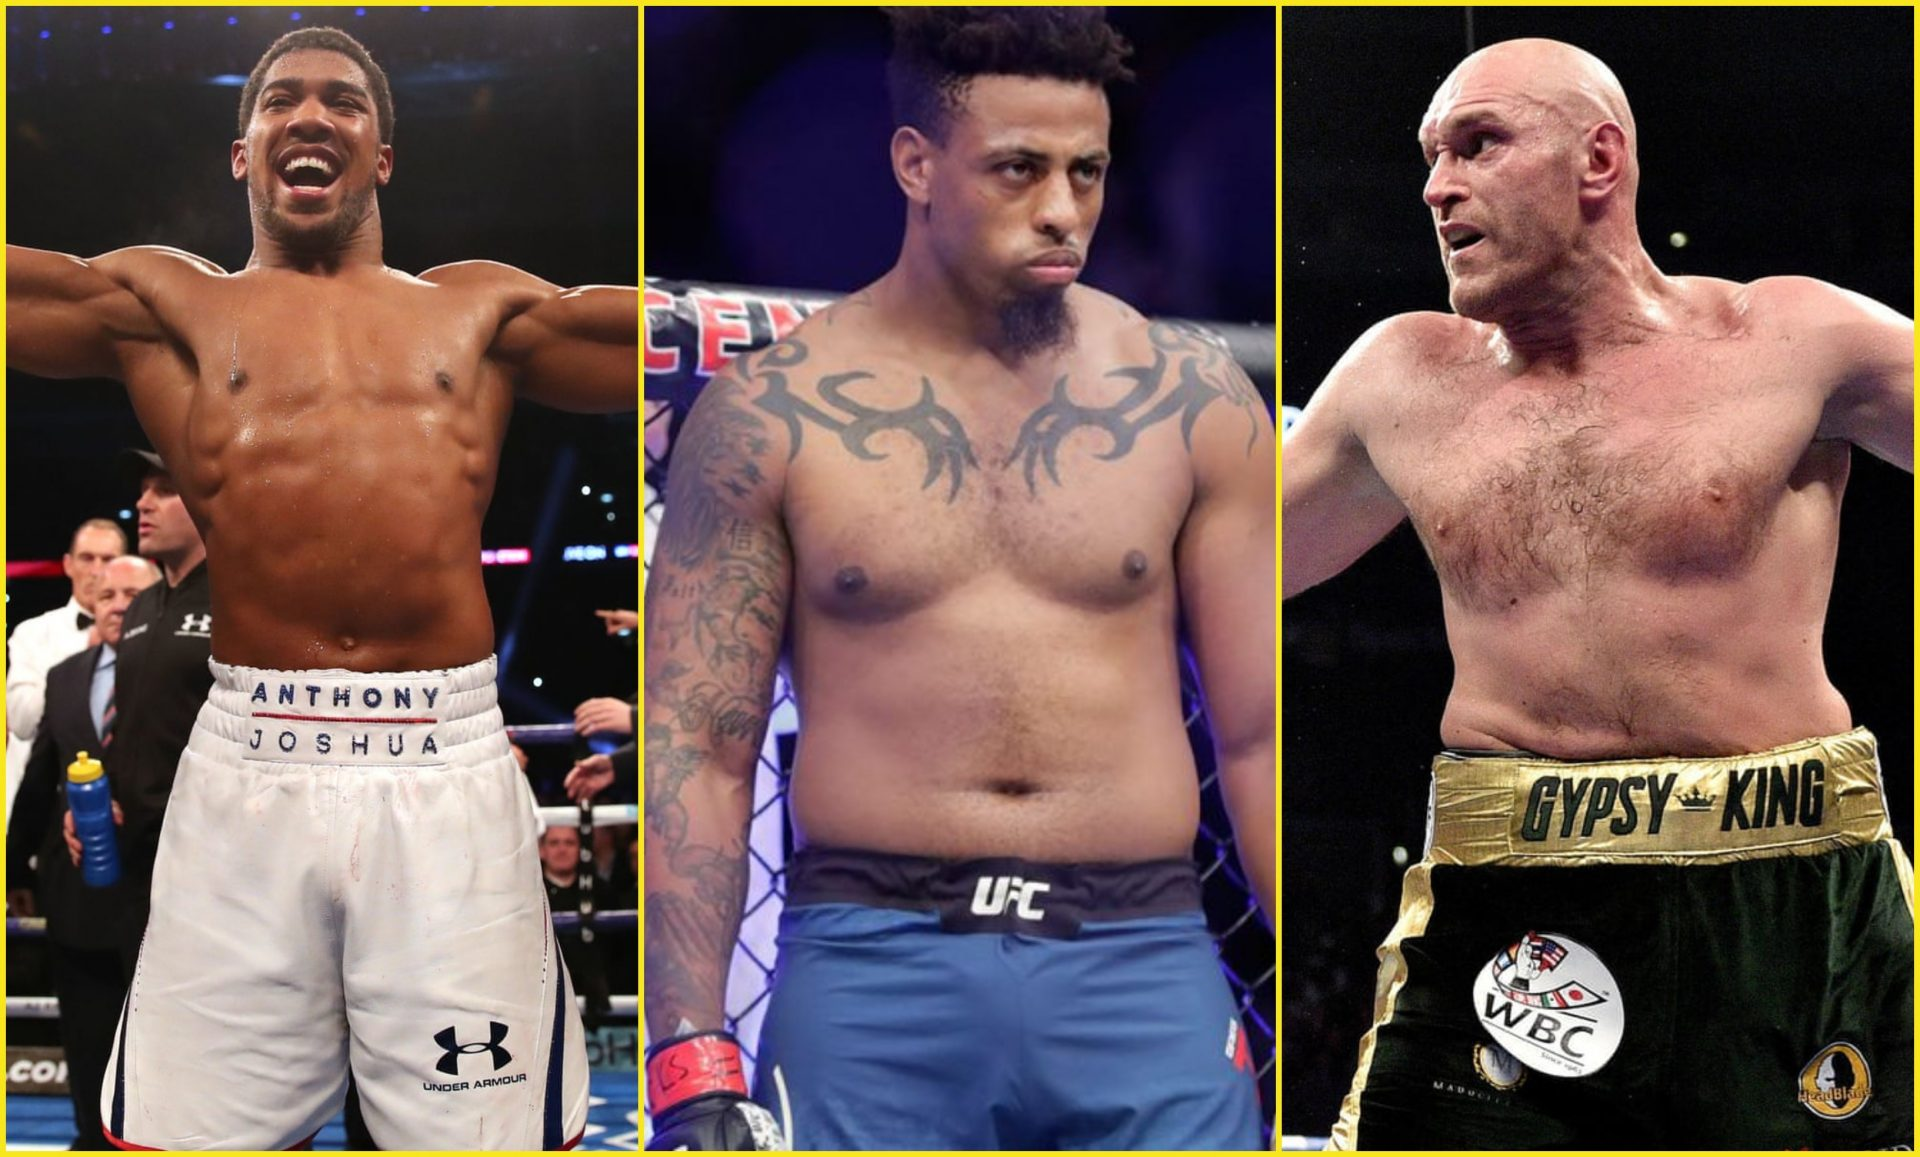 Greg Hardy says he will knock out Tyson Fury, Deontay Wilder and Anthony Joshua - Greg Hardy